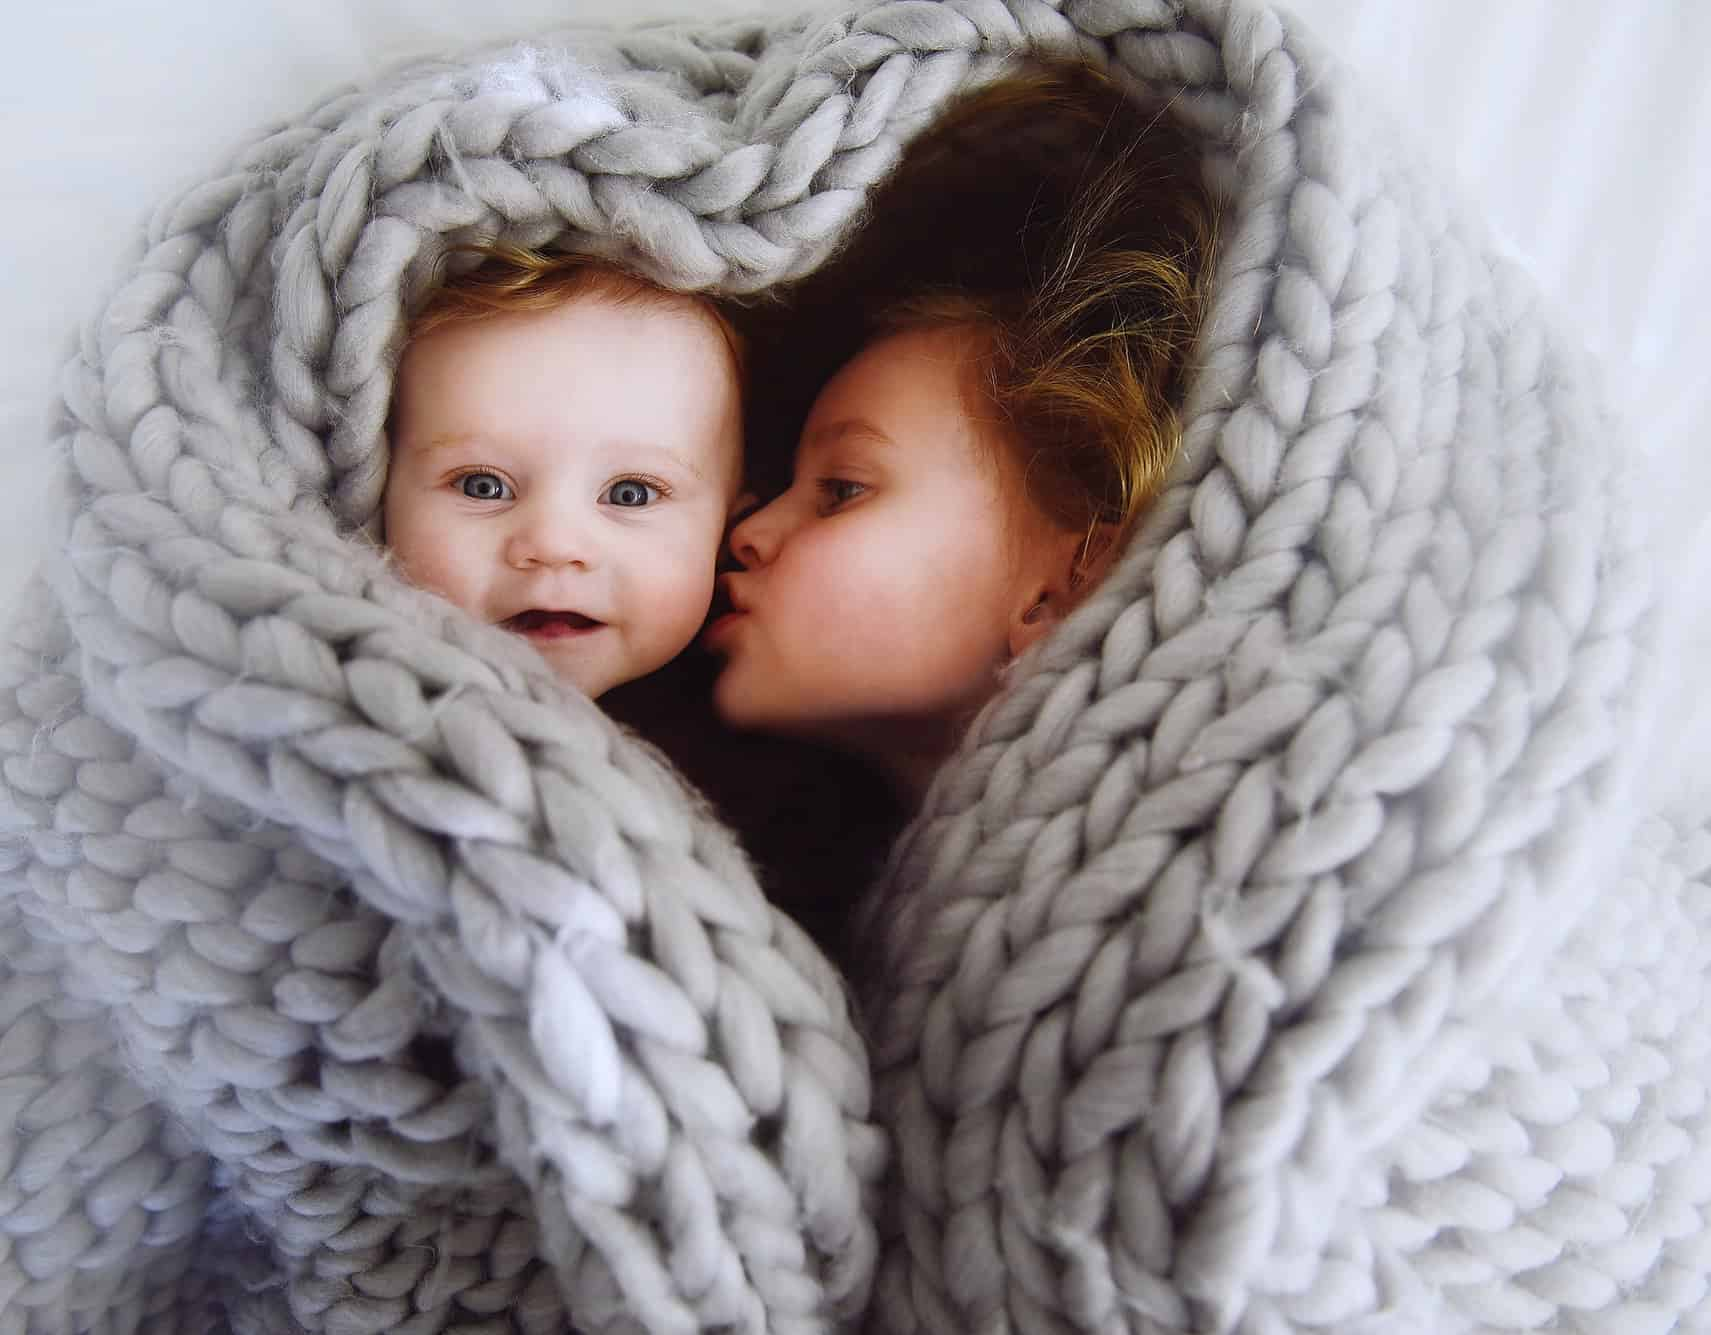 A sister kissing her baby brother while wrapped up in a blanket